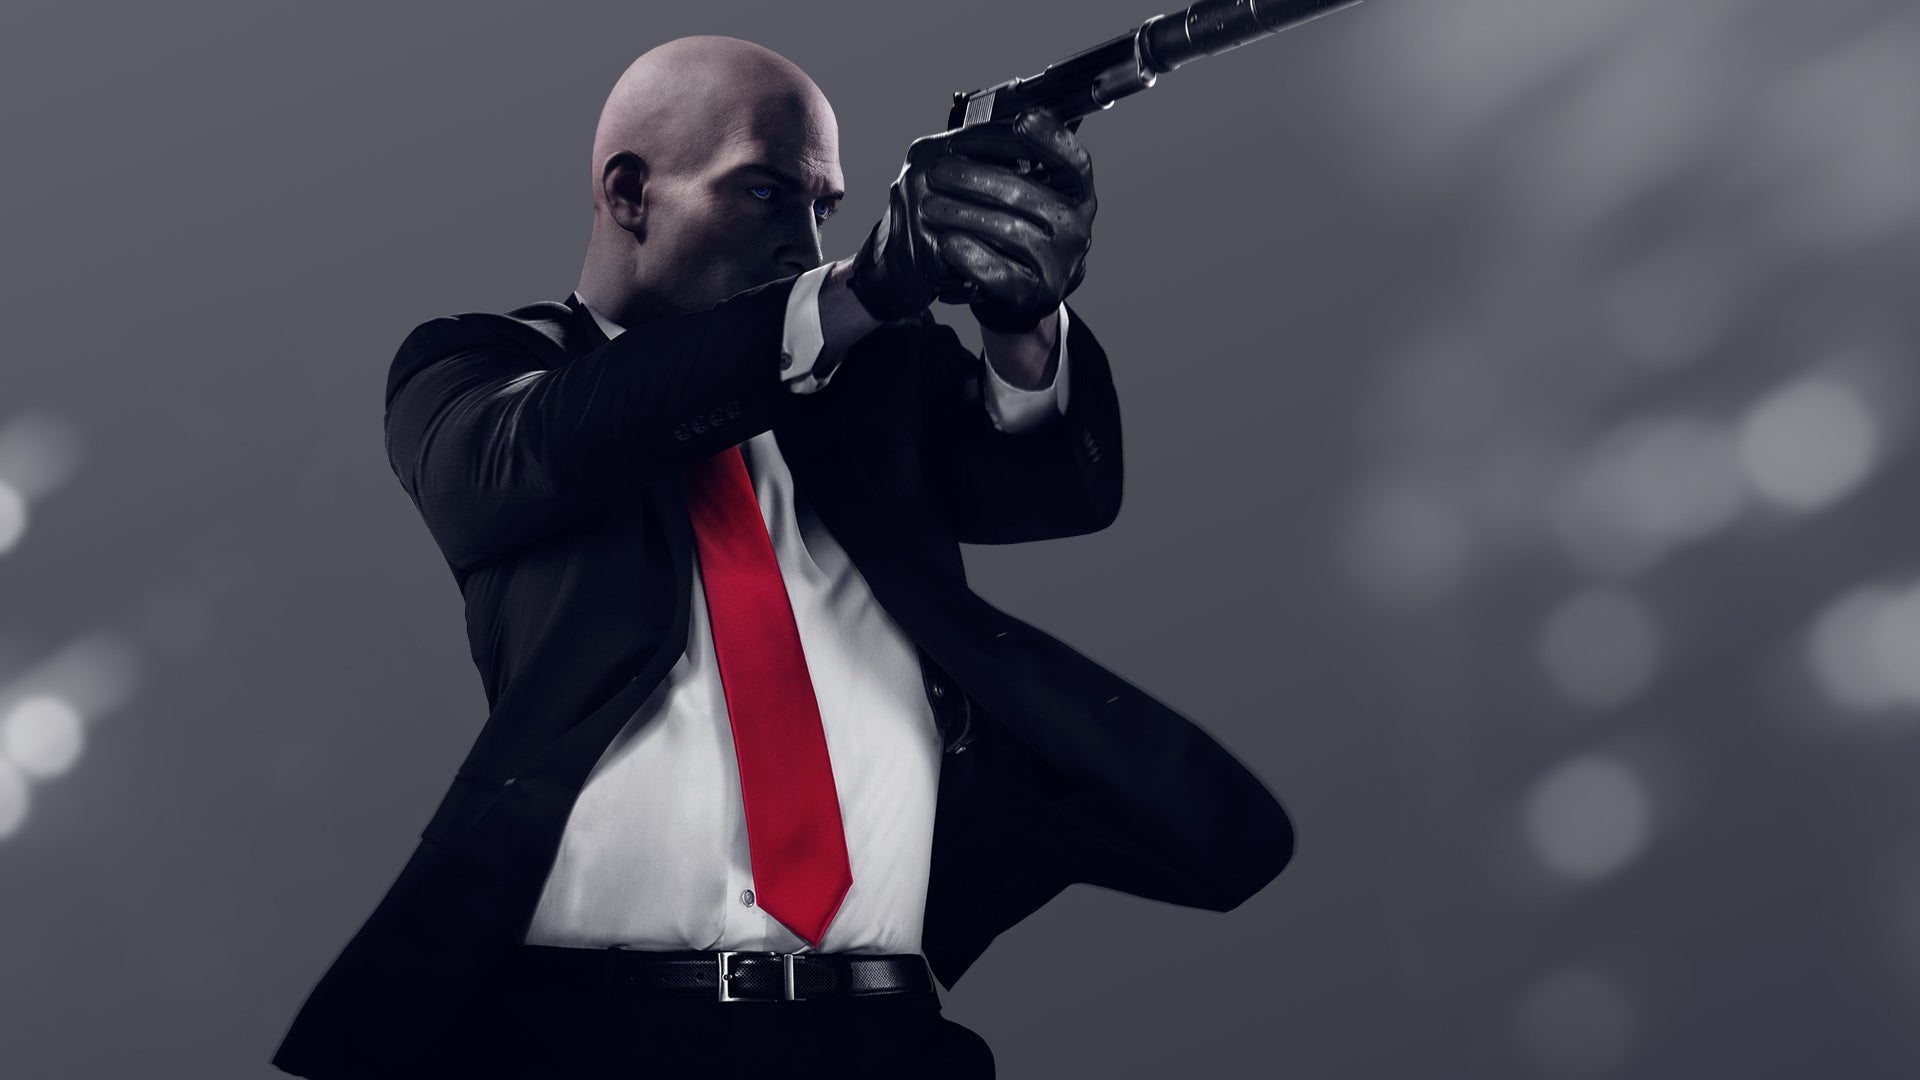 Hitman 3 Will See The World Of Assassination Return In January